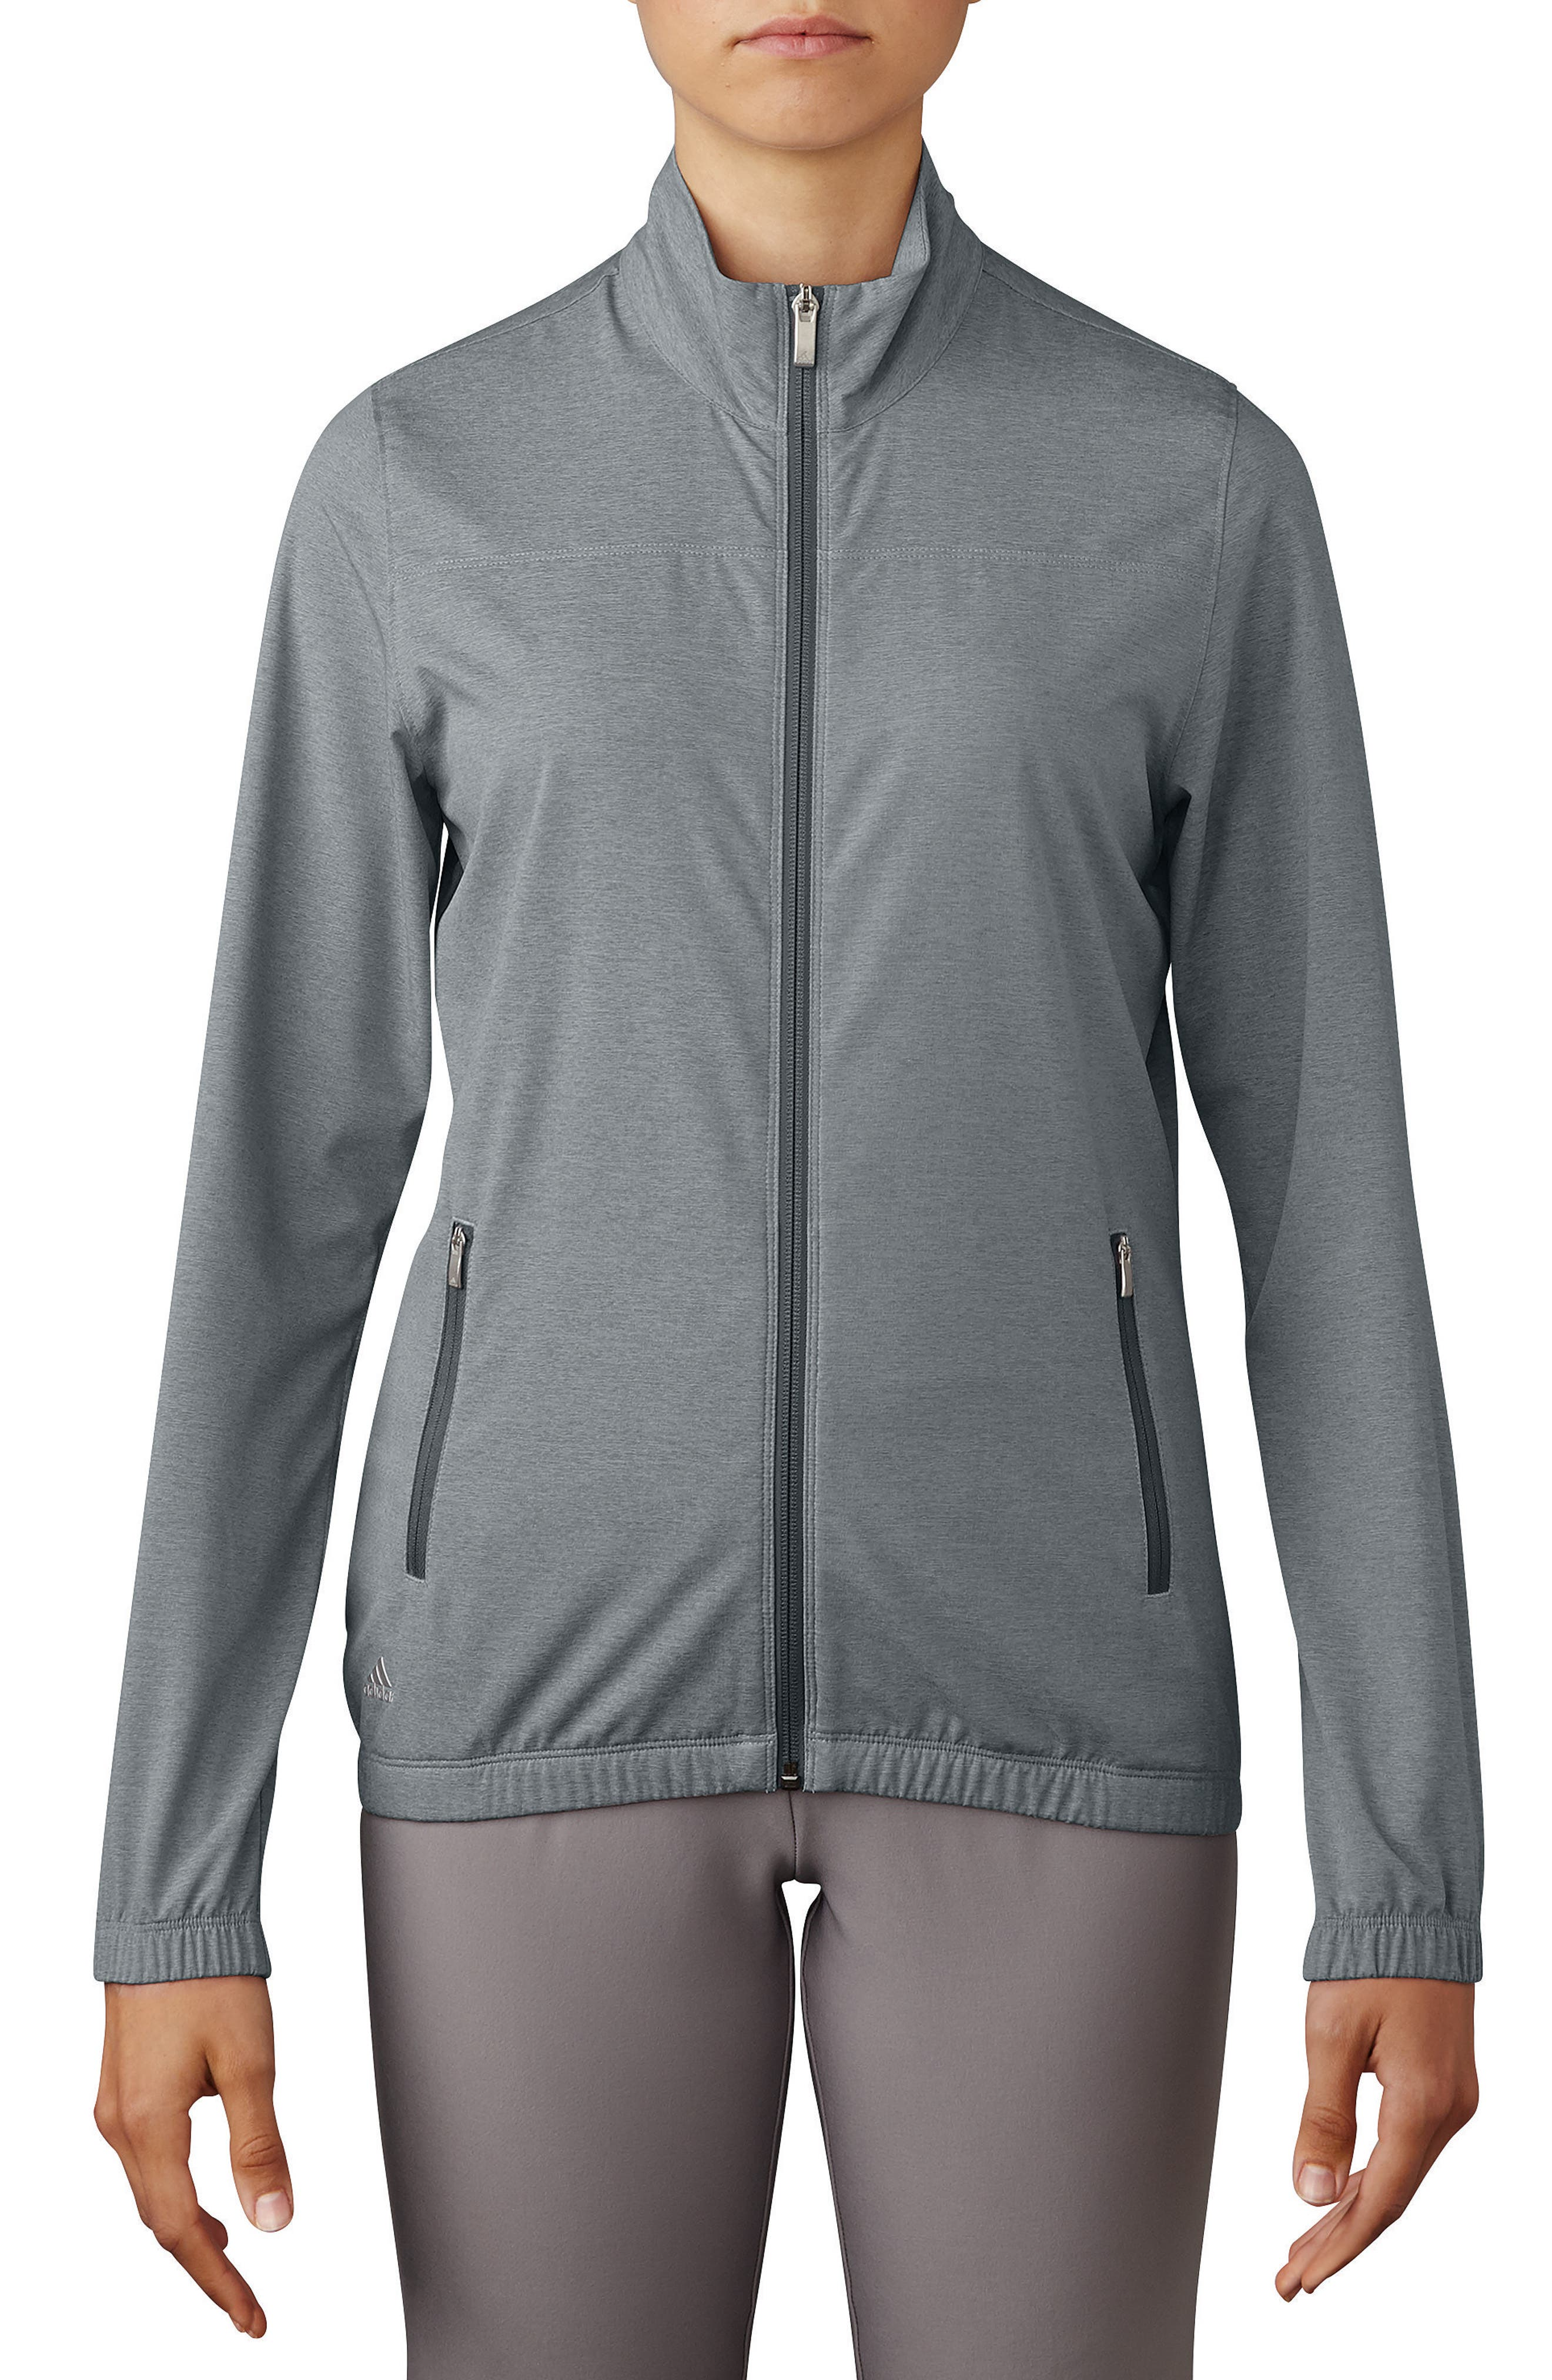 Essential Golf Wind Jacket,                             Main thumbnail 1, color,                             036